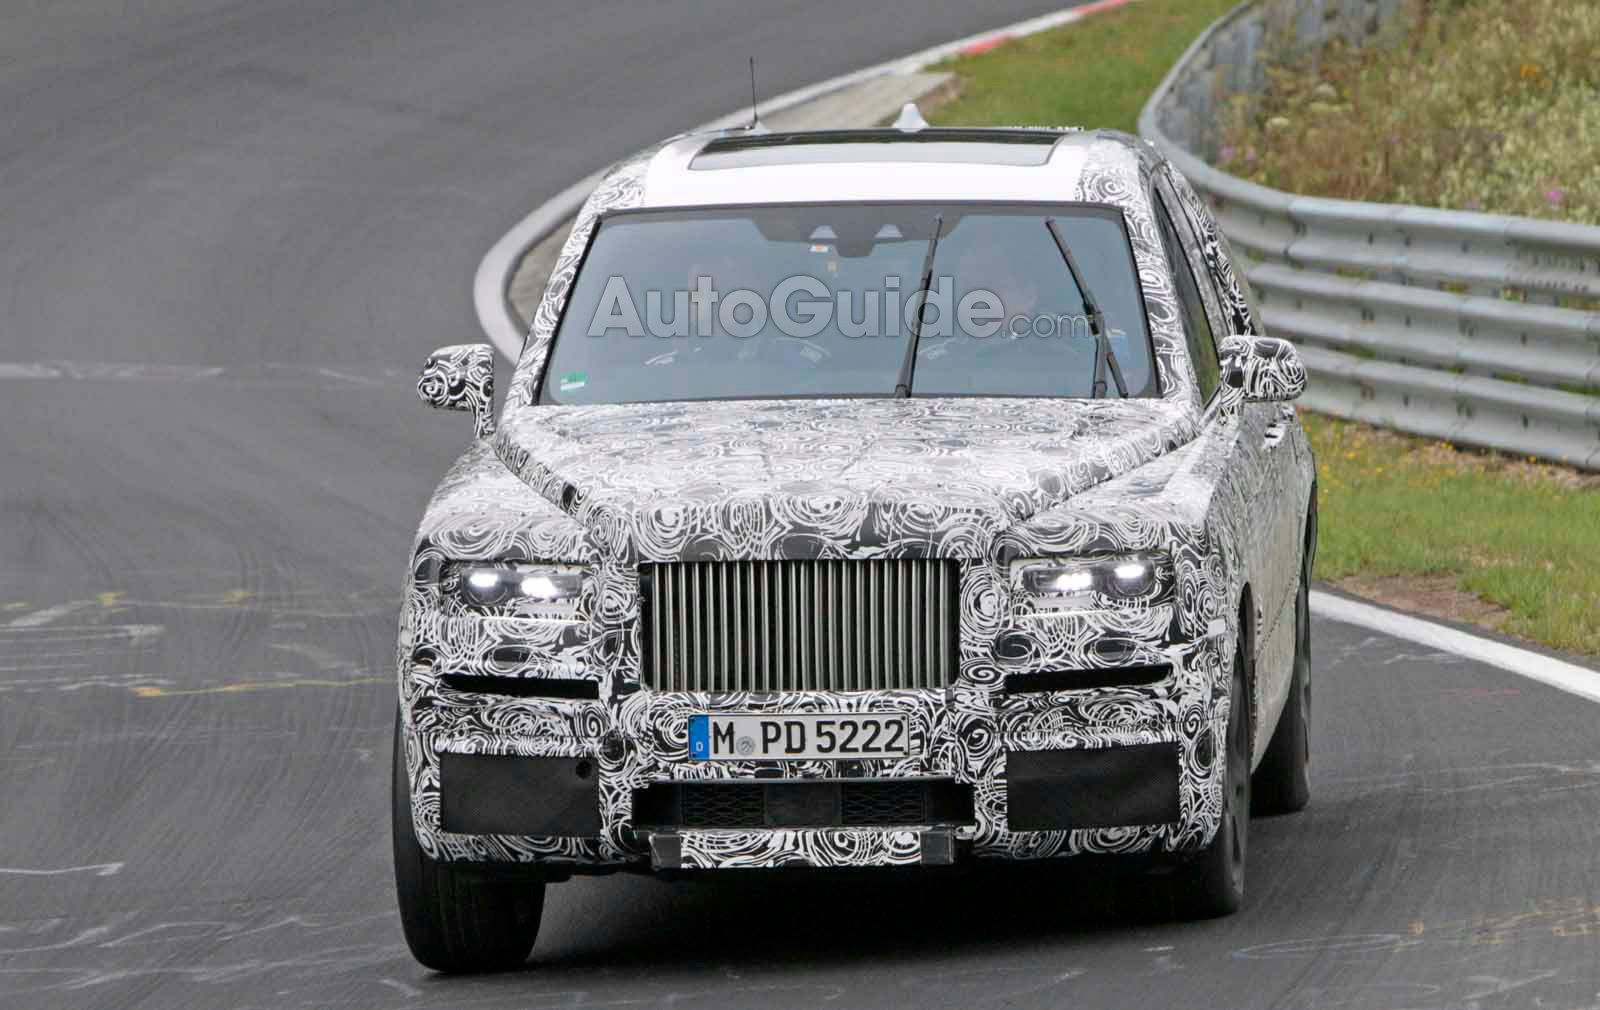 New 2018 Rolls-Royce Phantom wafts in